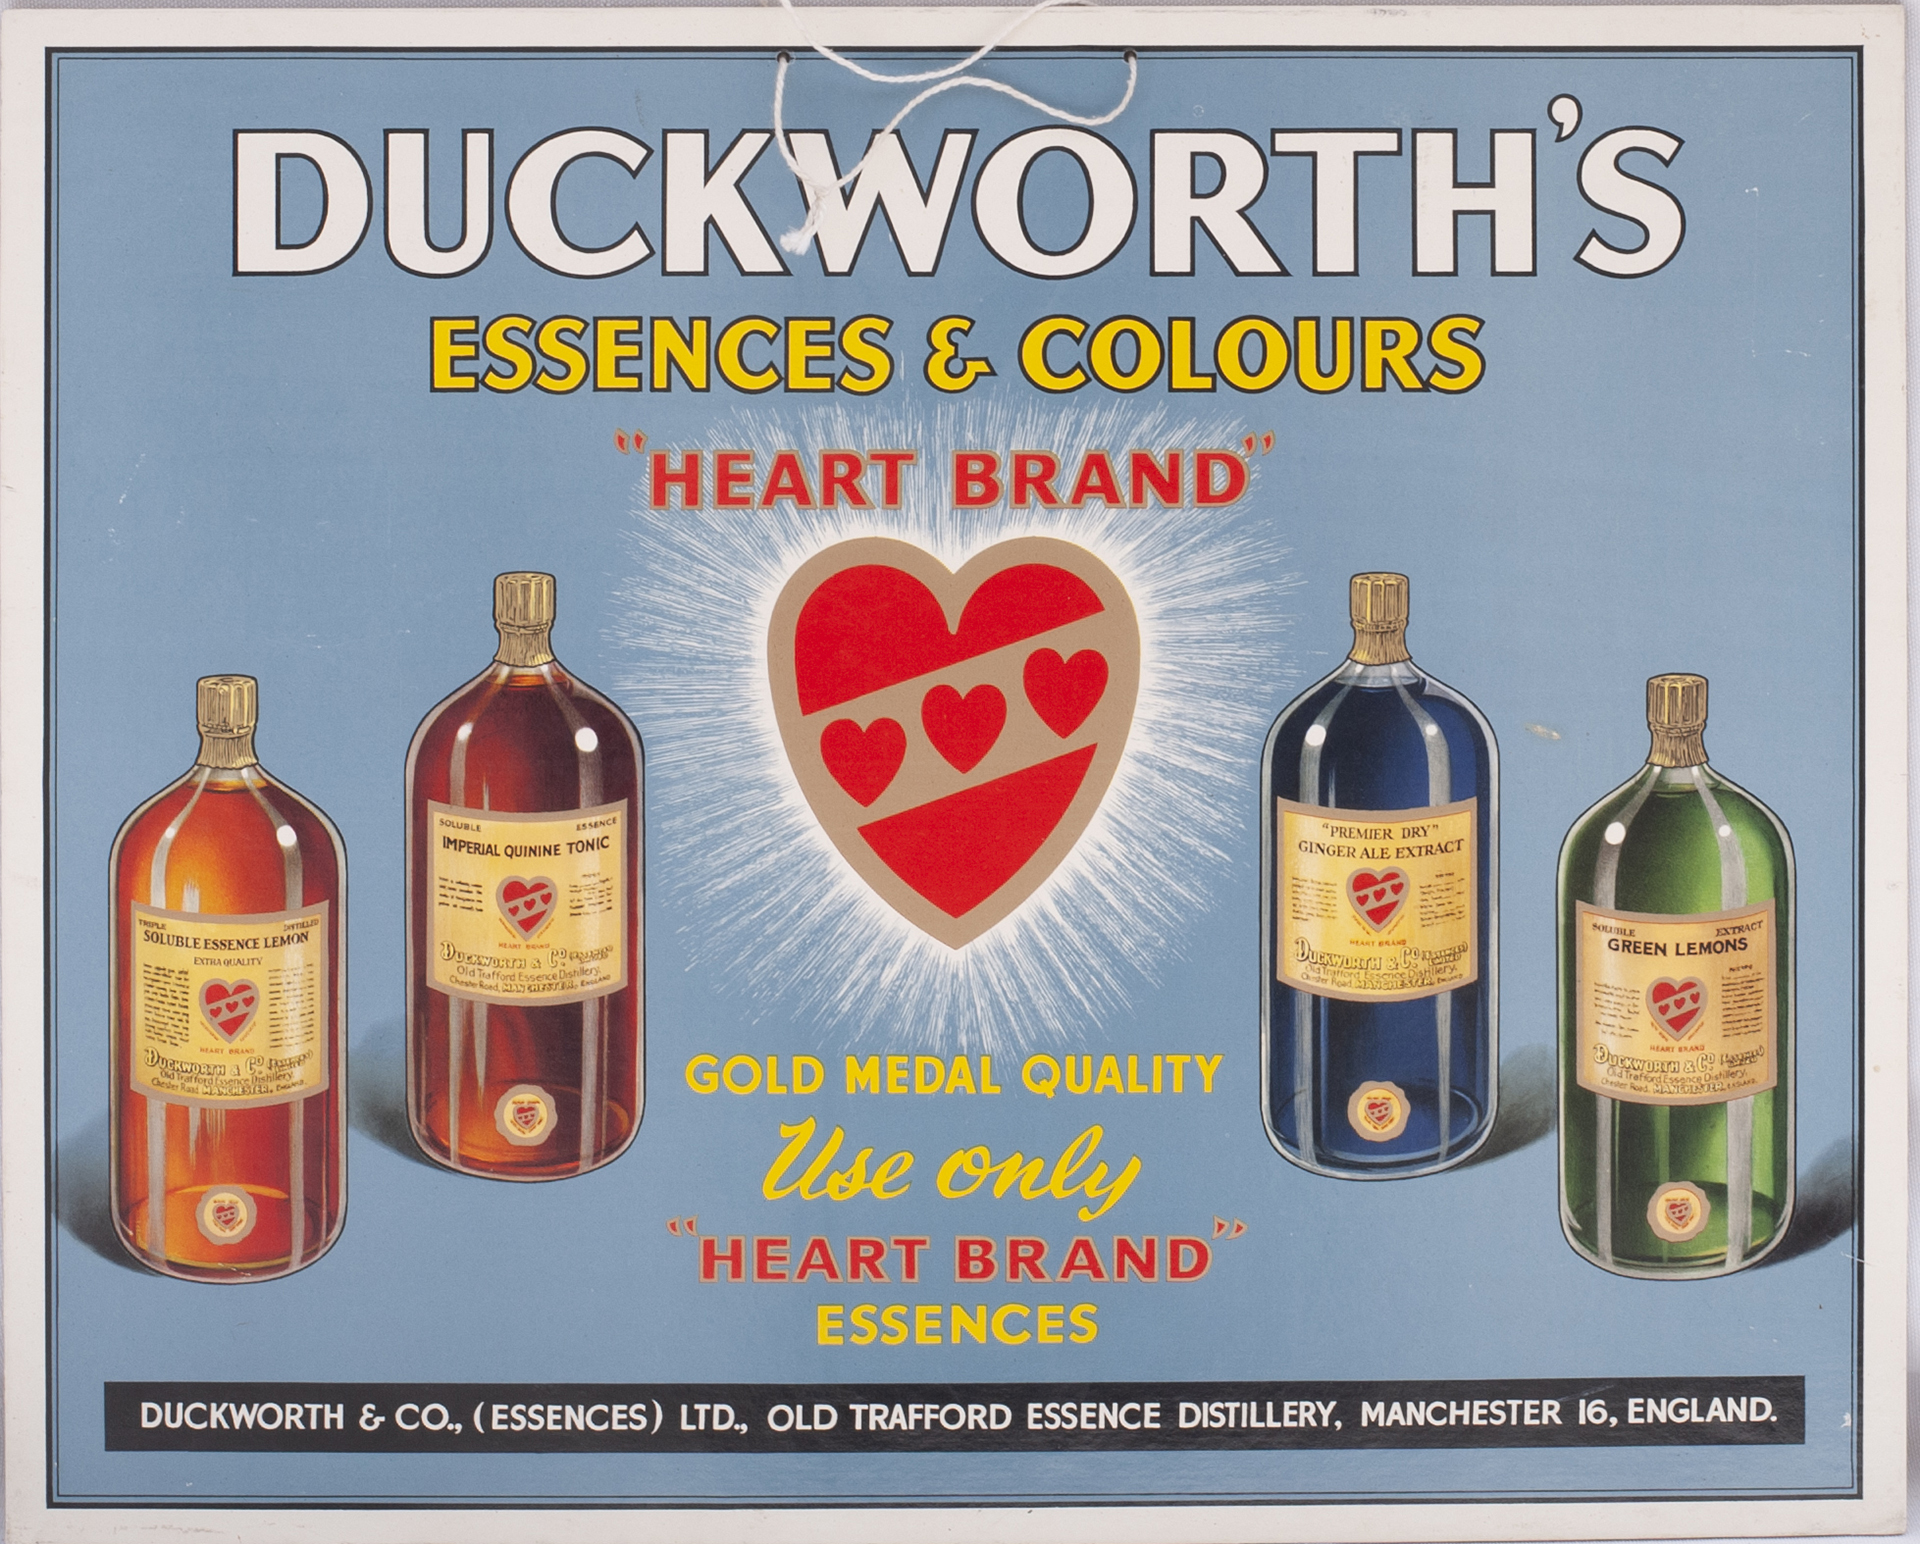 Advertising Show Card. DUCKWORTHS ESSENCES & COLOURS. OLD TRAFFORD MANCHESTER. Measures 17.5 in x